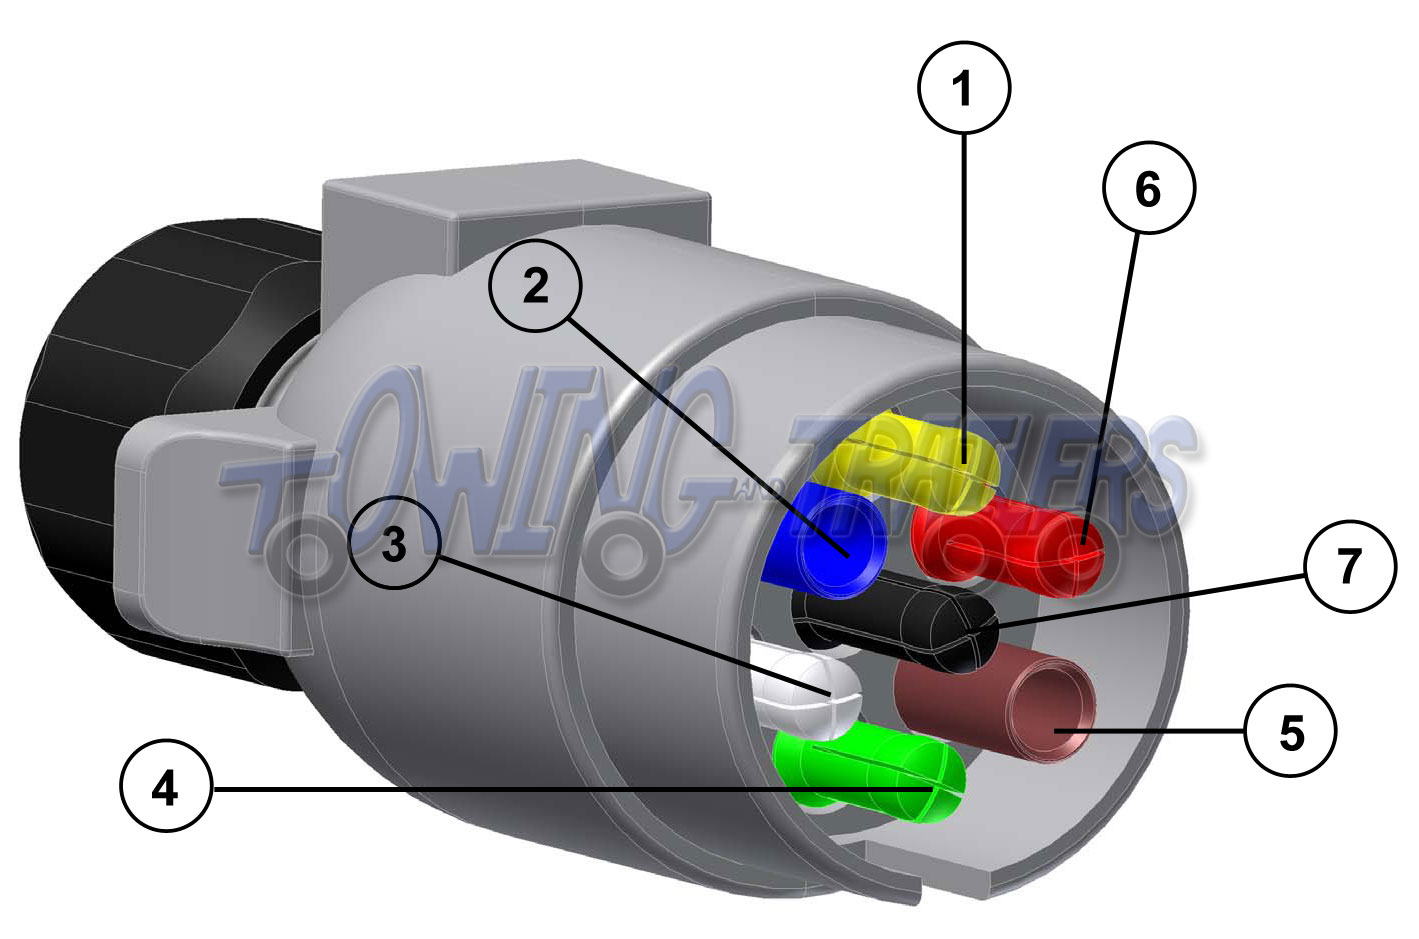 Ford Transit Trailer Wiring Diagram | Wiring Library - Ford Transit Trailer Wiring Diagram